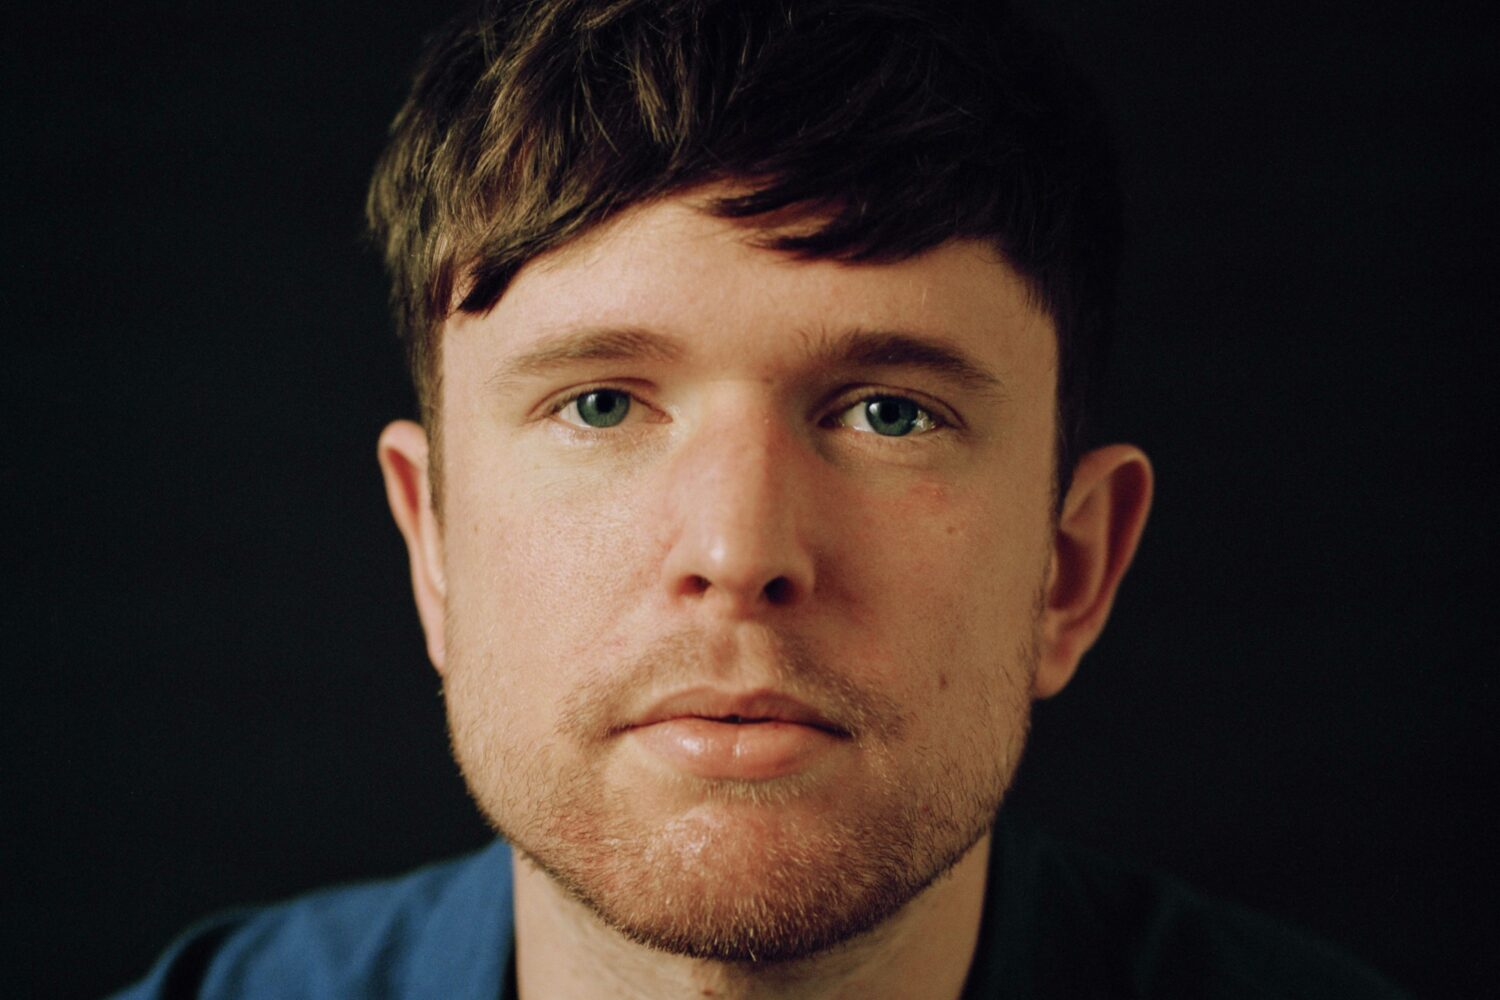 James Blake reveals 'Before' EP tracklisting